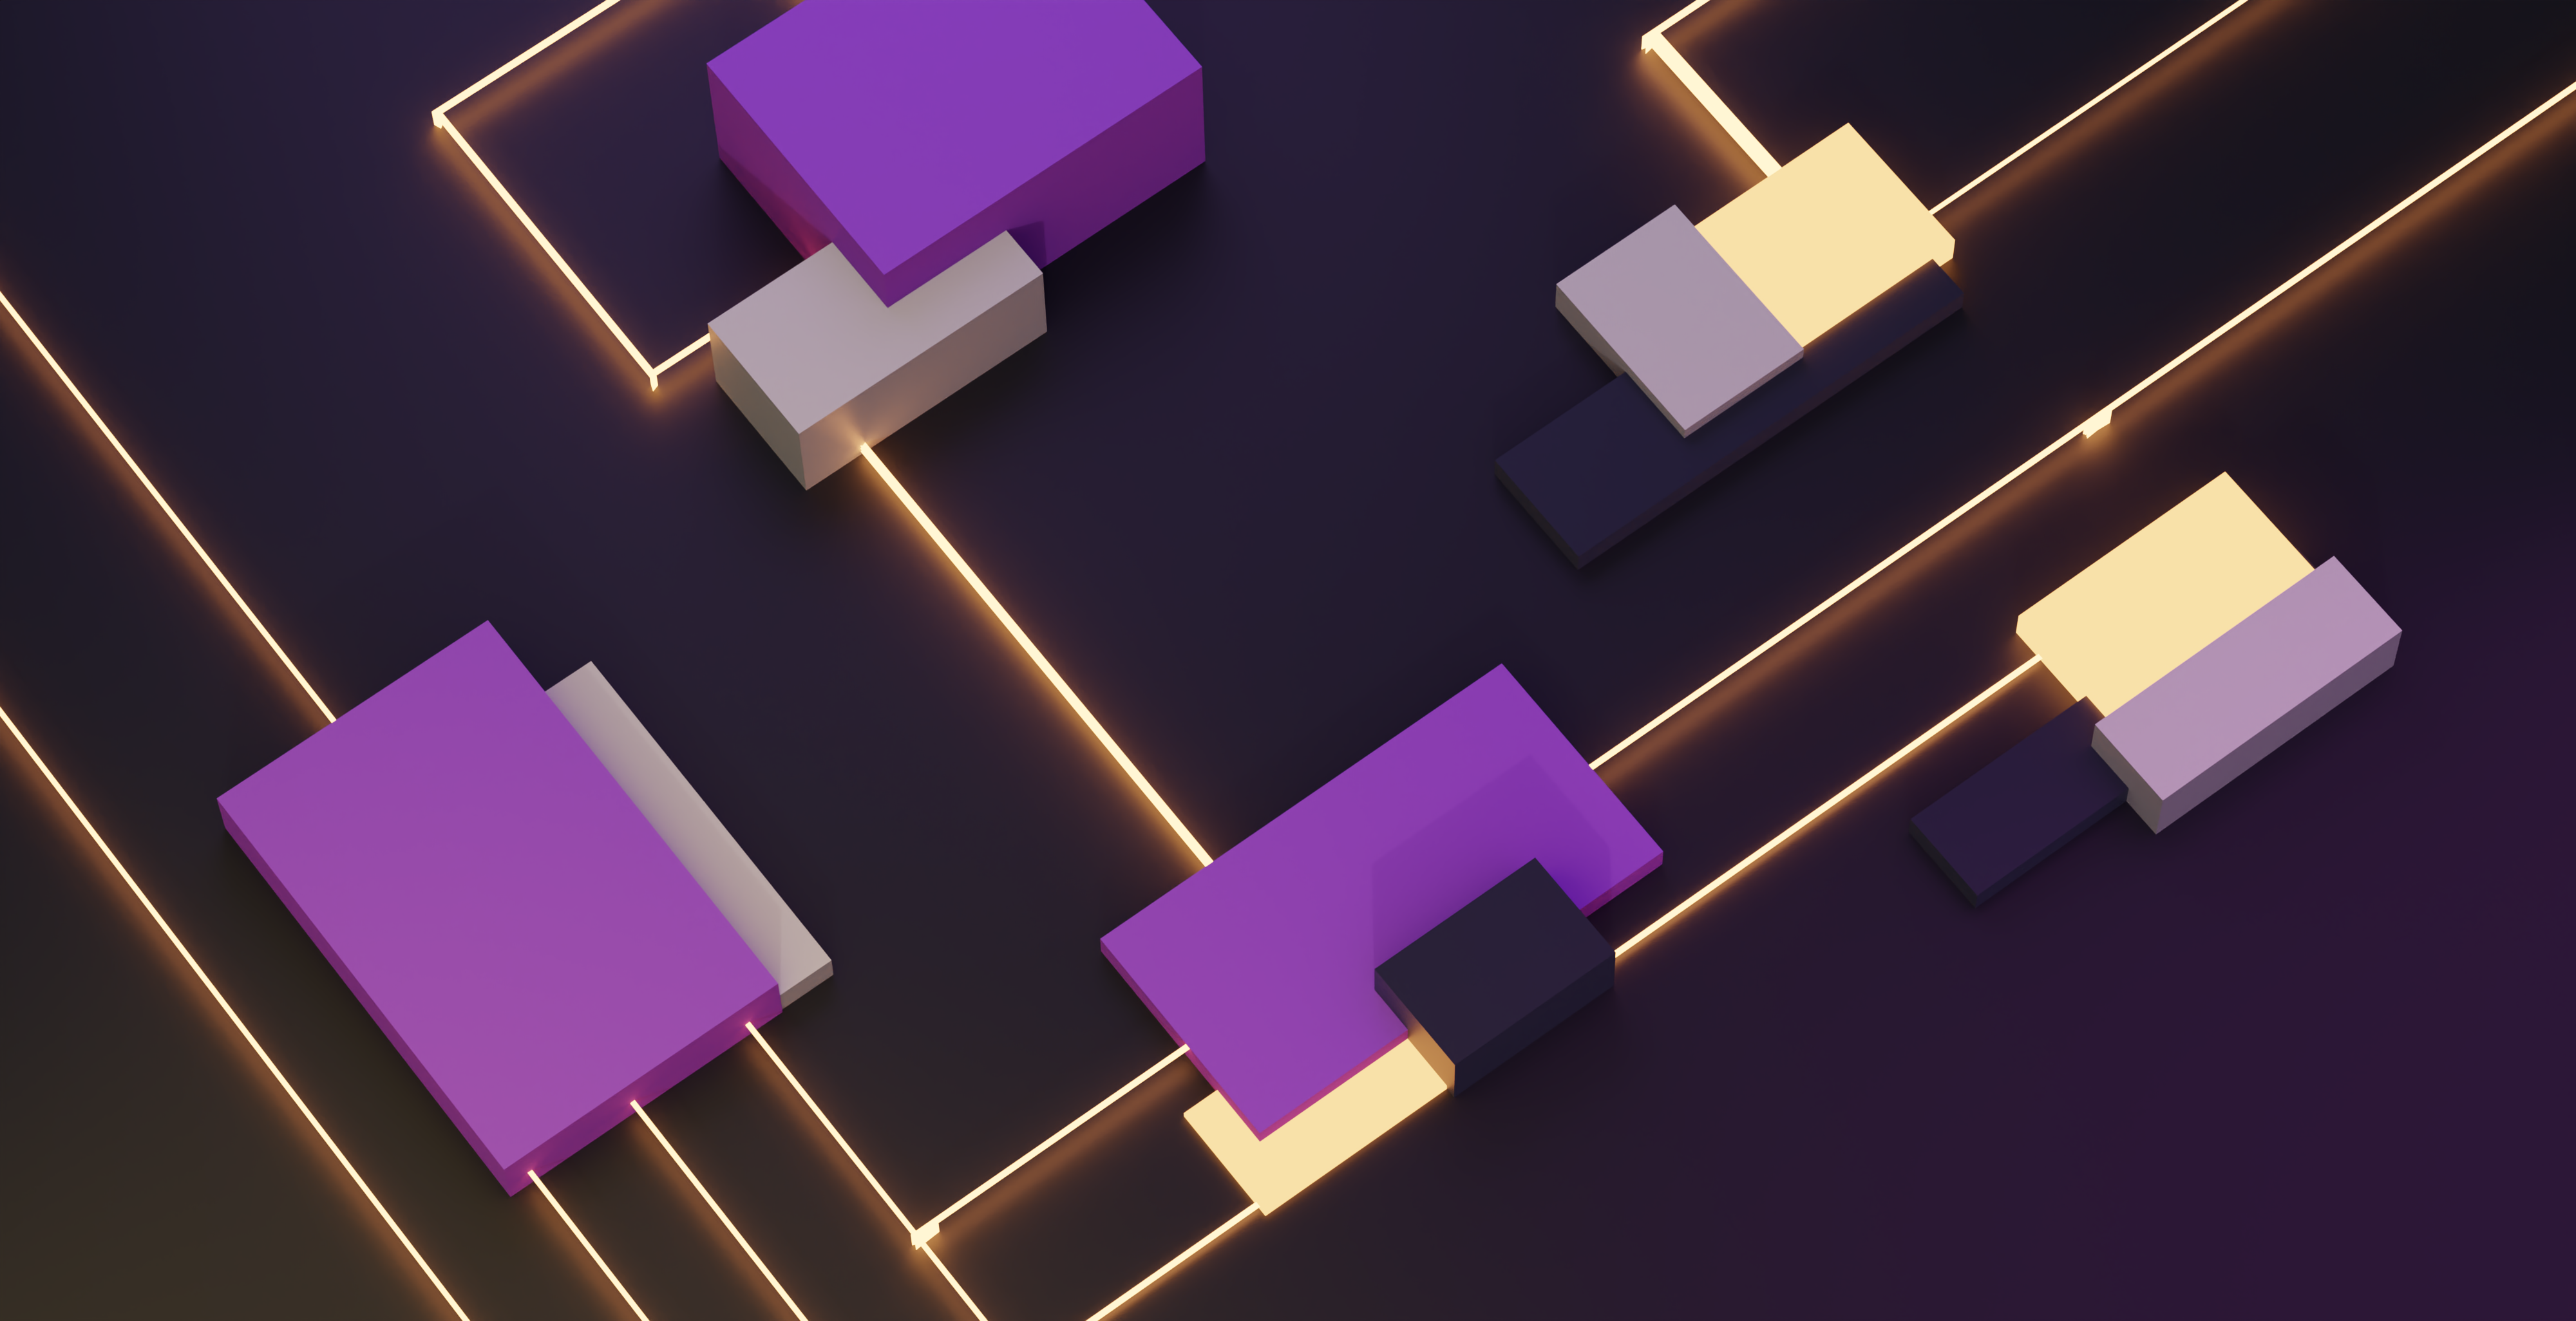 purple 3d shapes connected with glowing golden lines